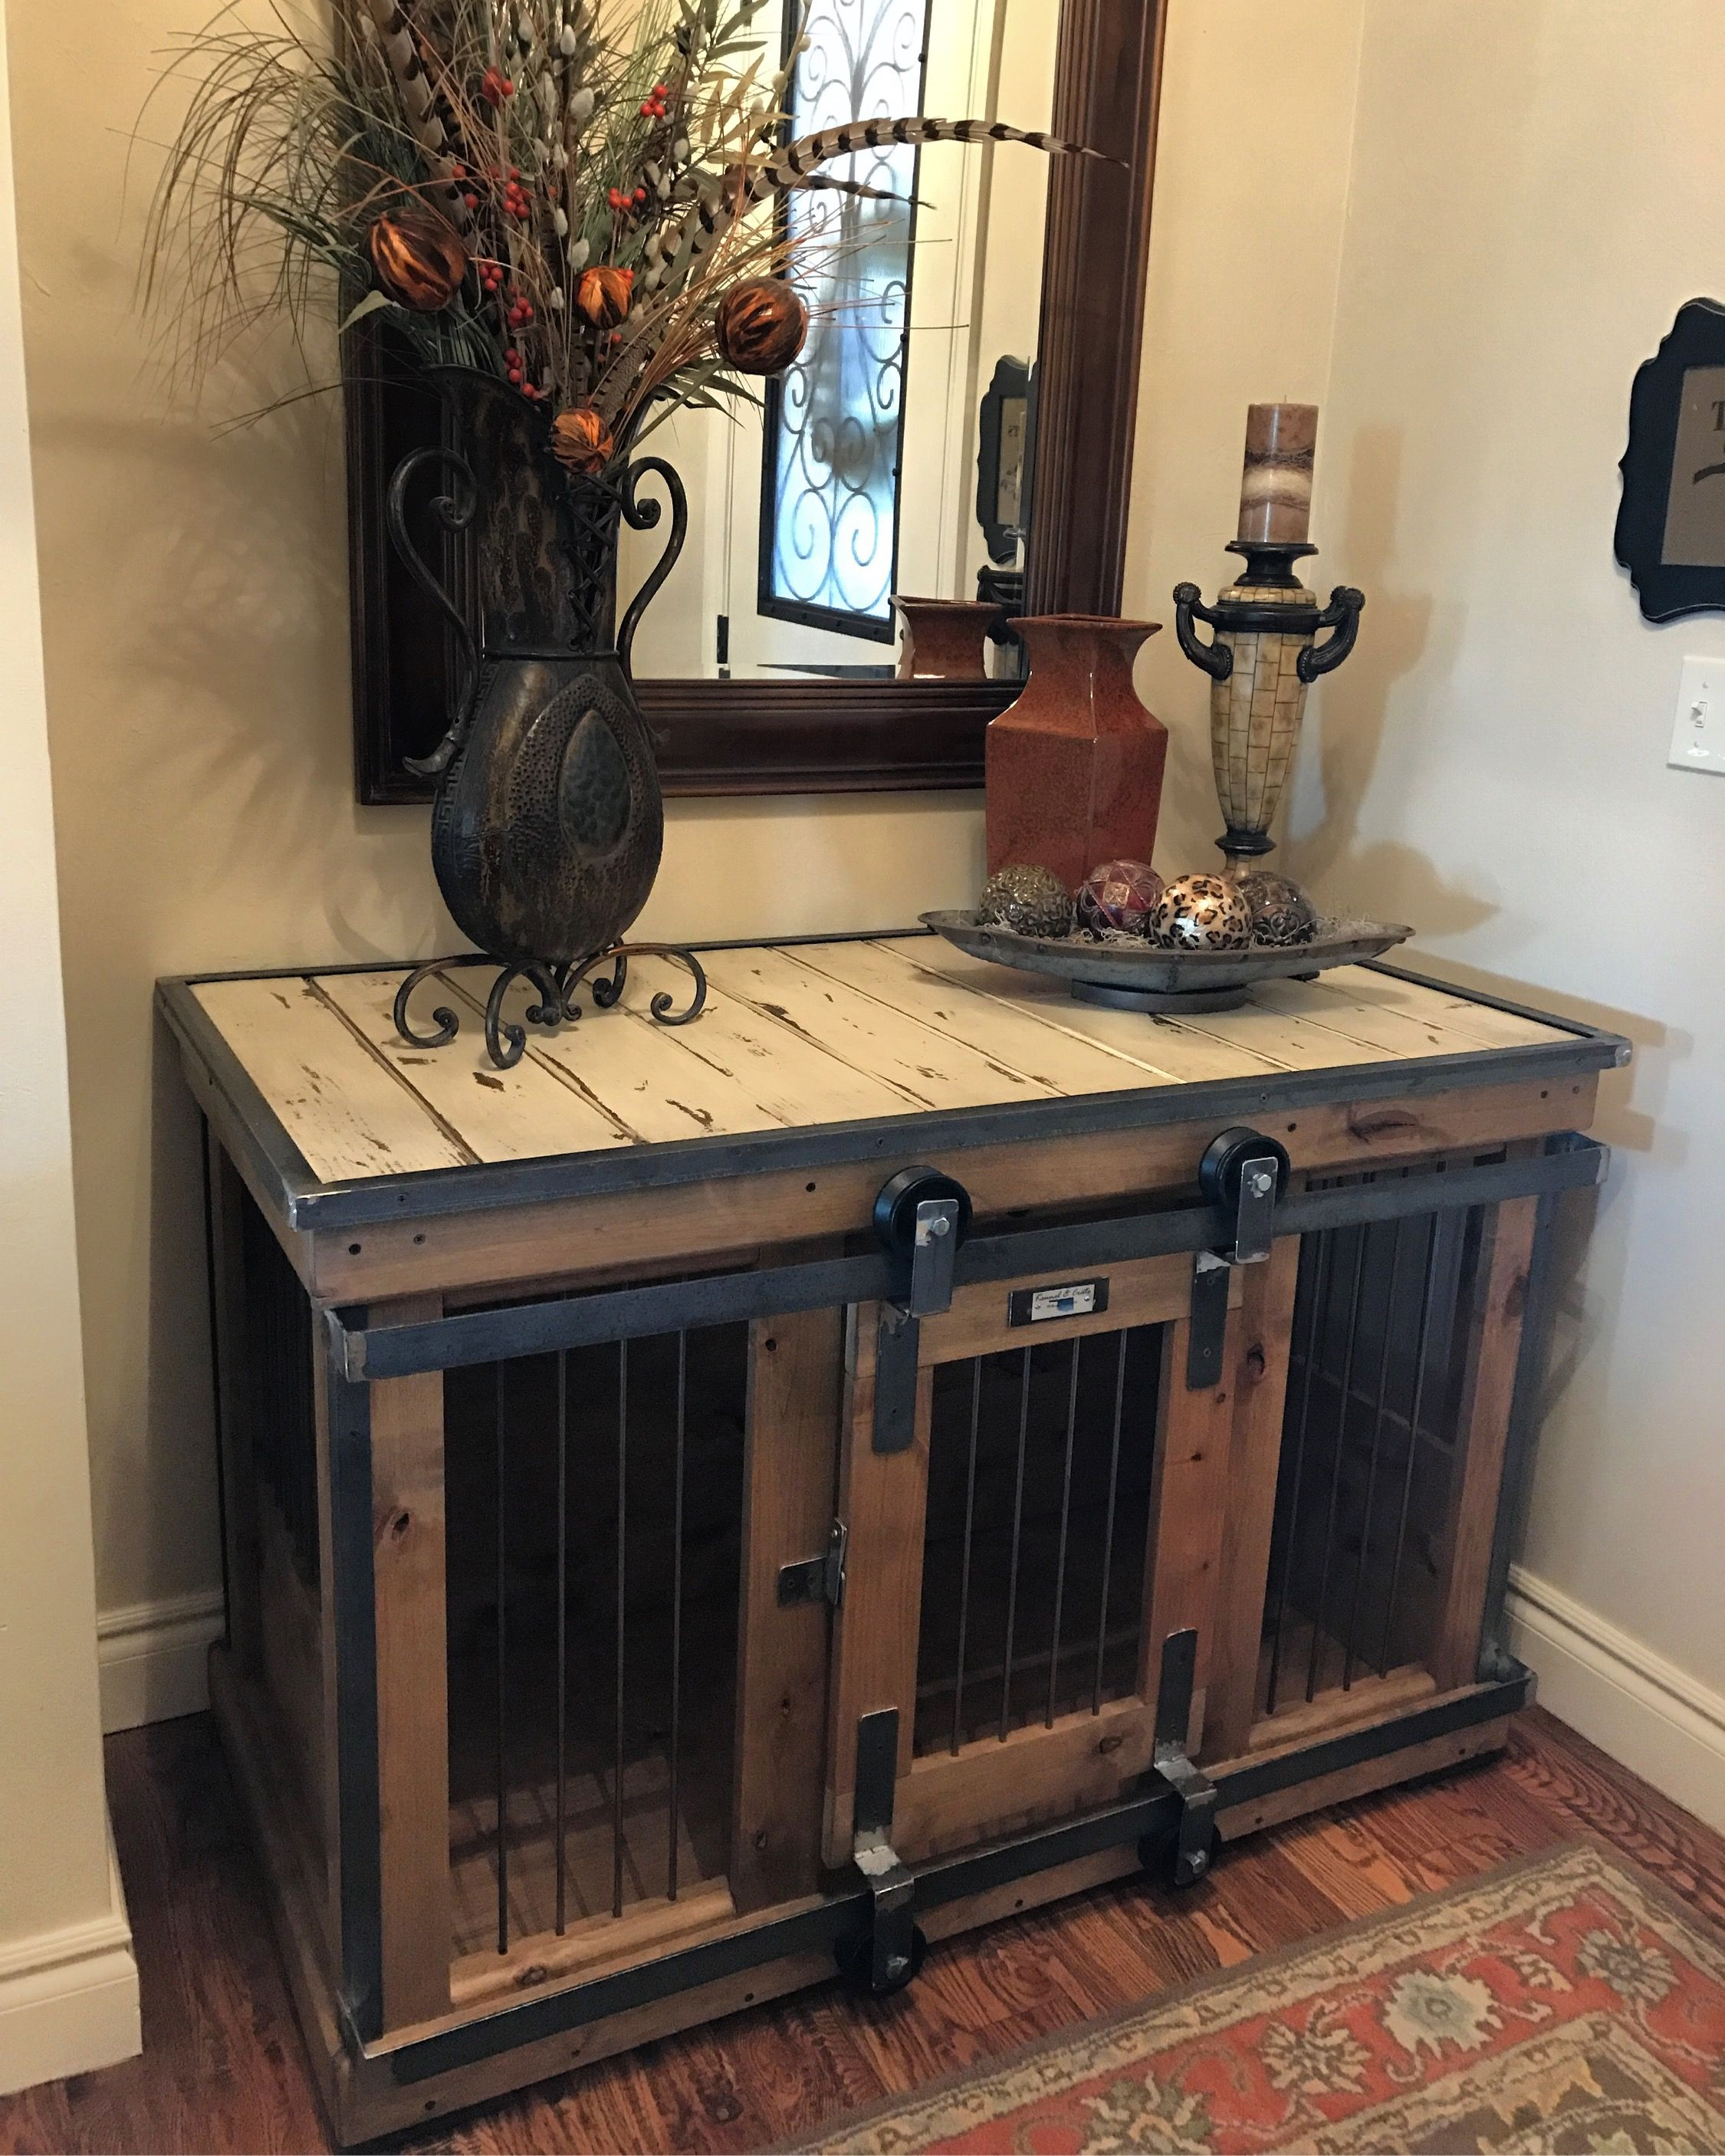 Cheap Wooden Crates The 25 43 Best Wooden Crates Tv Stand Ideas On Pinterest